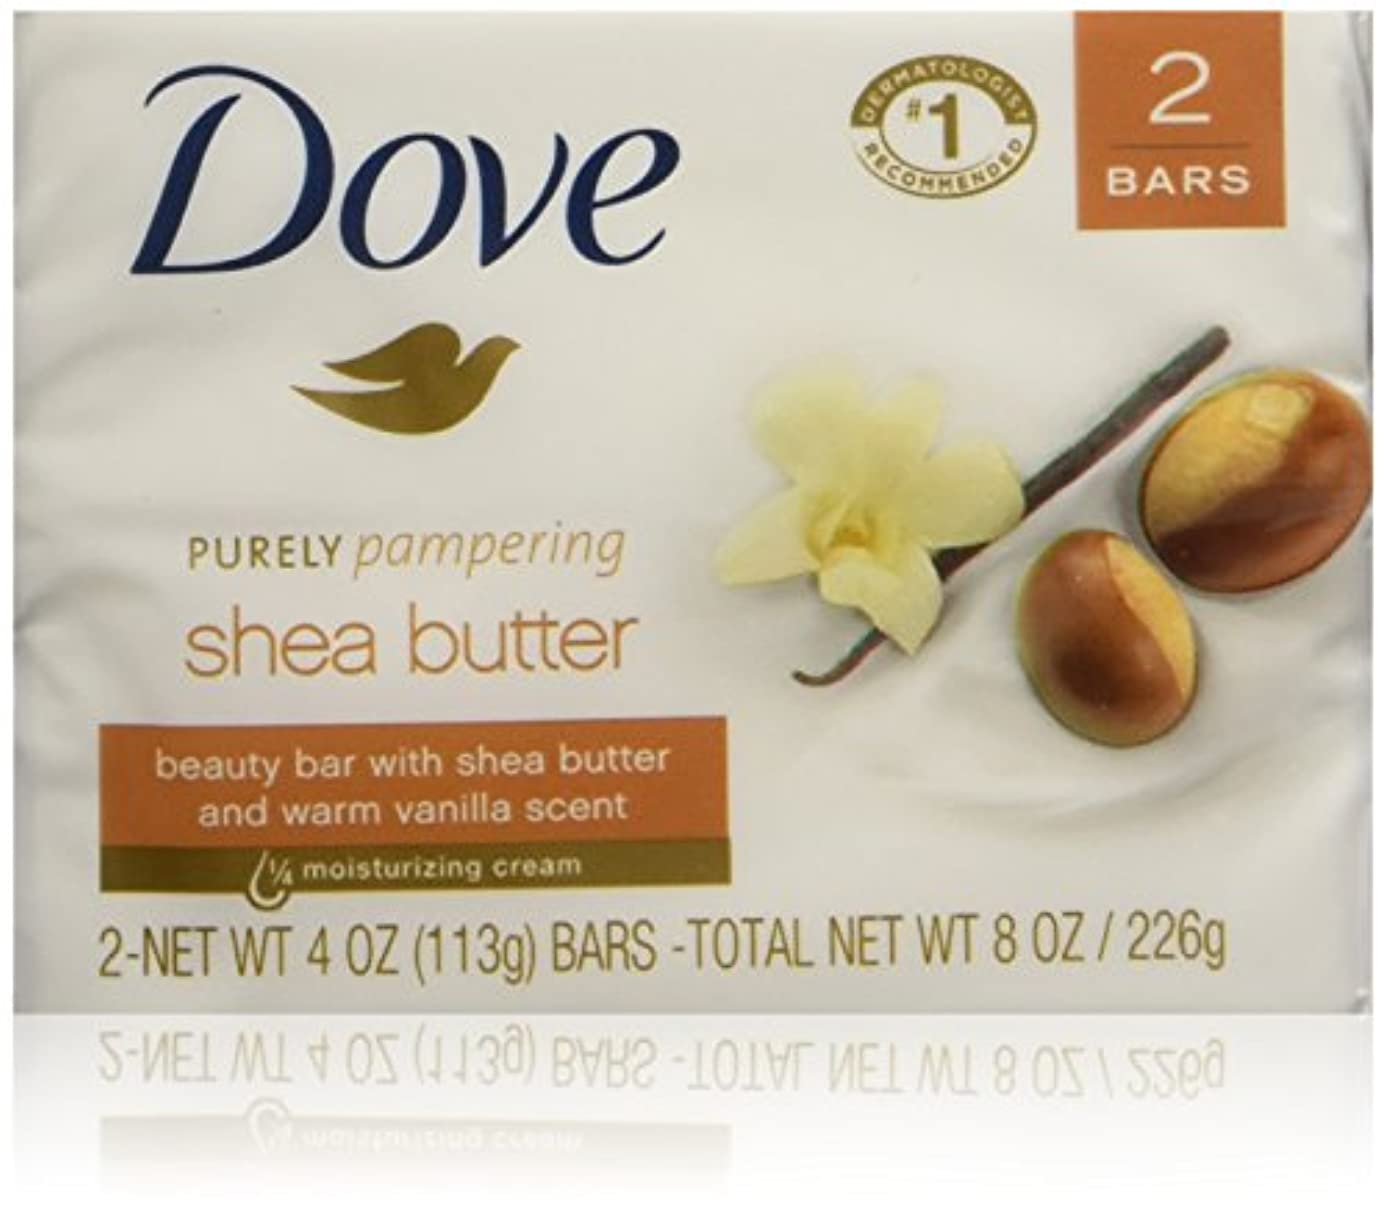 Dove Nourishing Care Shea Butter Moisturizing Cream Beauty Bar 2-Count 120 g Soap by Dove